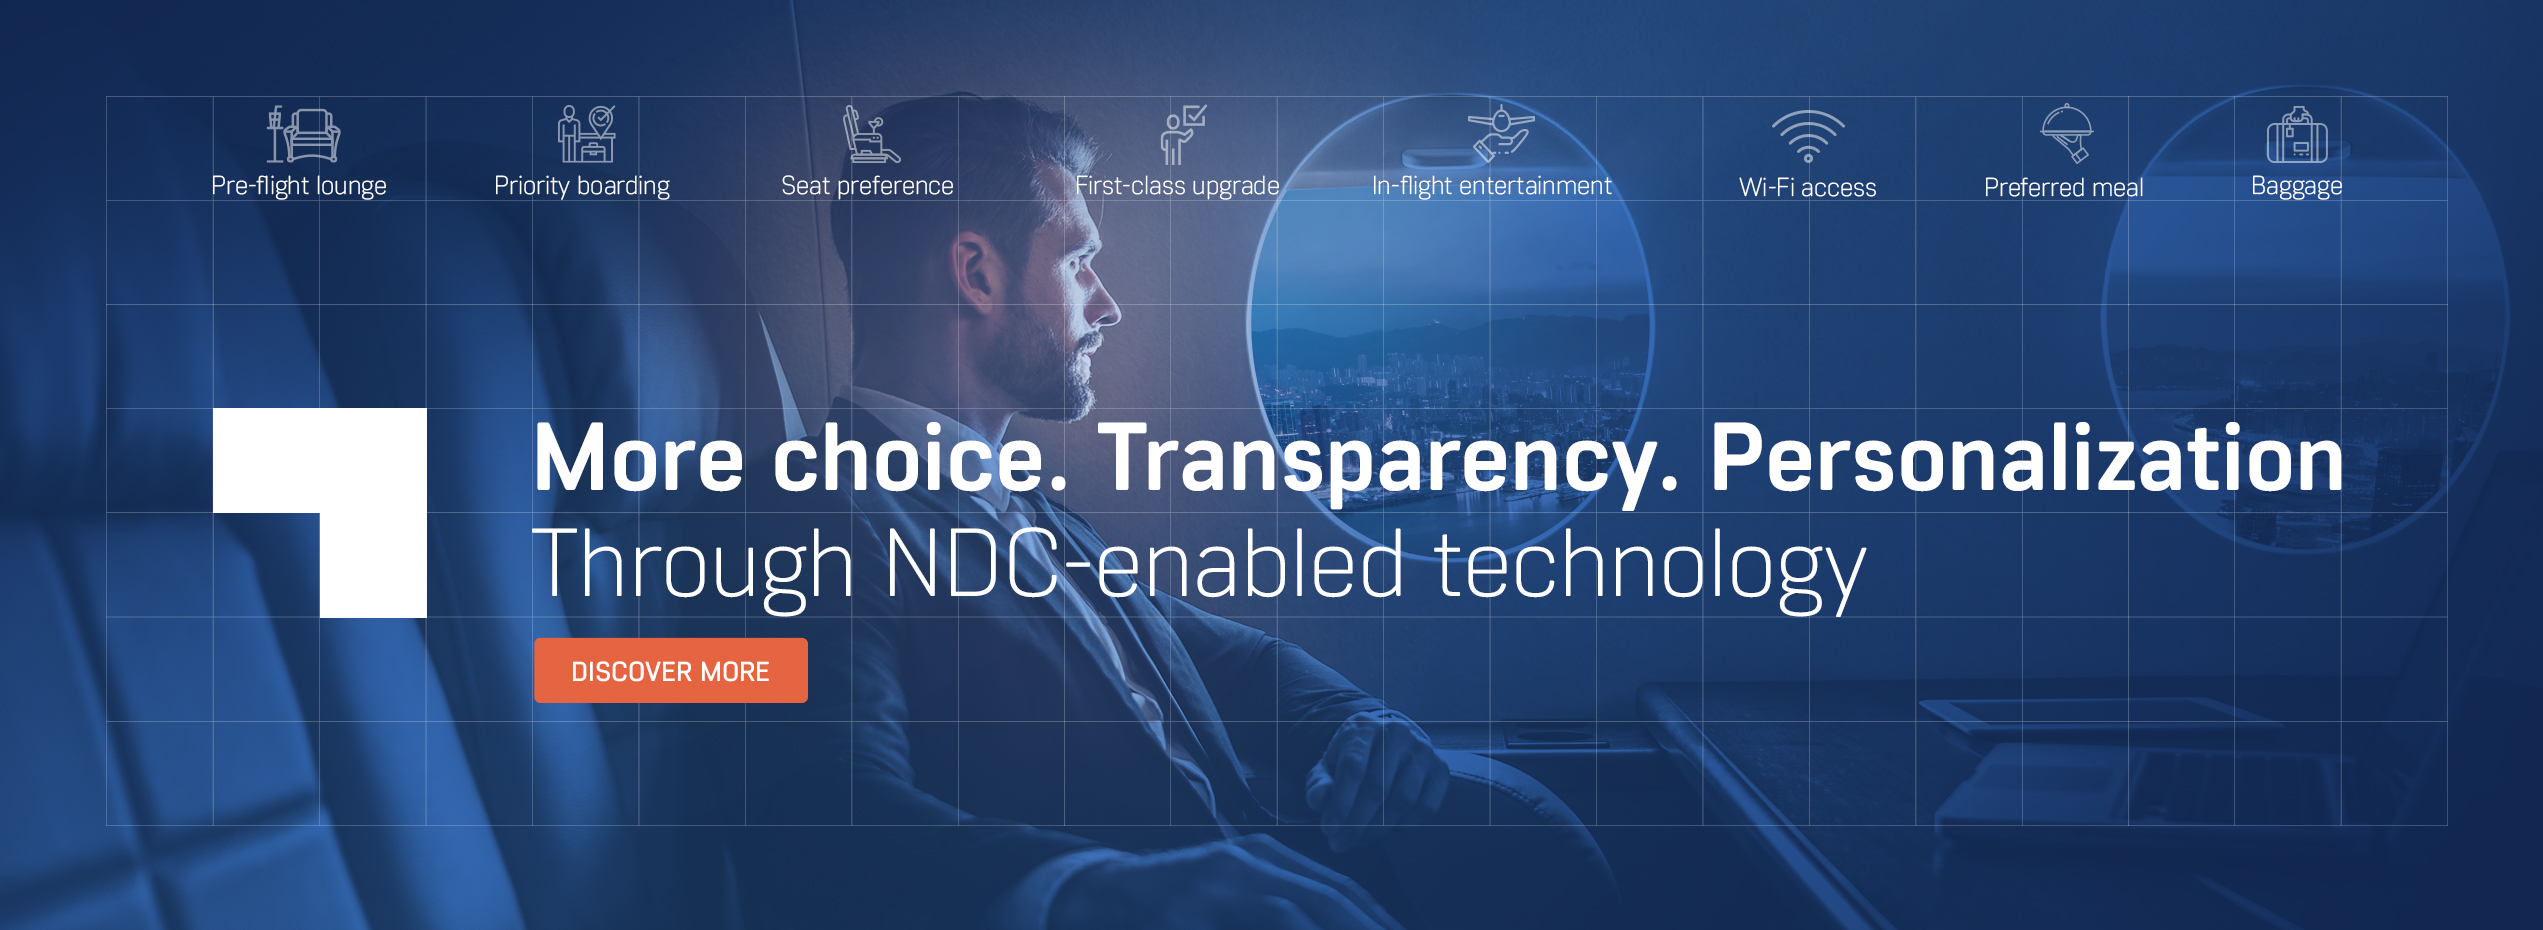 NDC-enabled technology